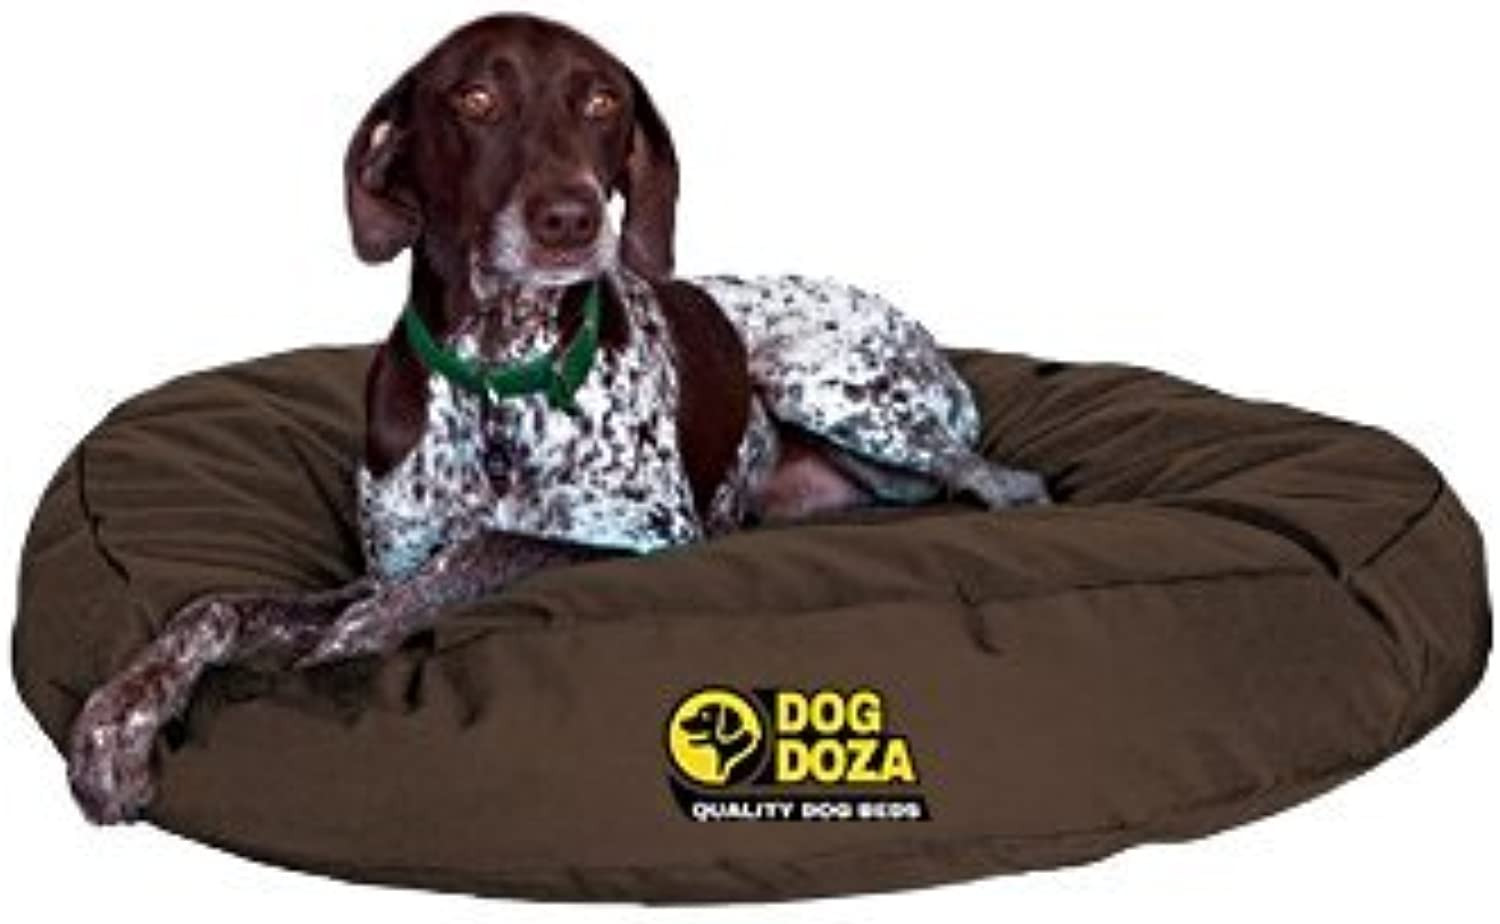 Dog Doza Durable Waterproof Round Beds for Small to Medium Dogs